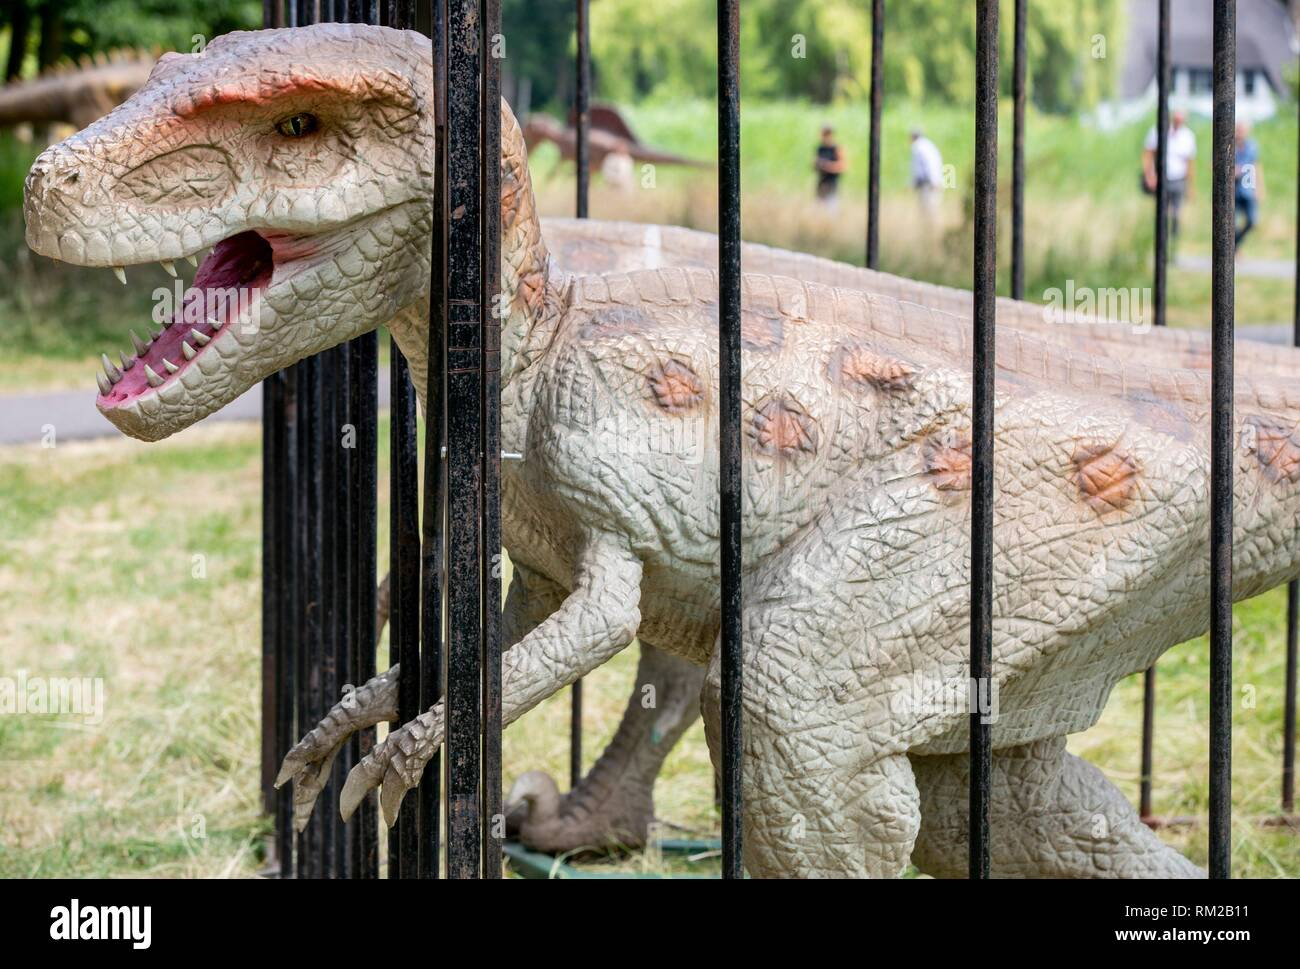 SCHIEDAM - Press preview of Jurassic Kingdom in The Netherlands. Jurassic Kingdom: Where Dinosaurs Come To Life, continues its UK & European Tour. Stock Photo